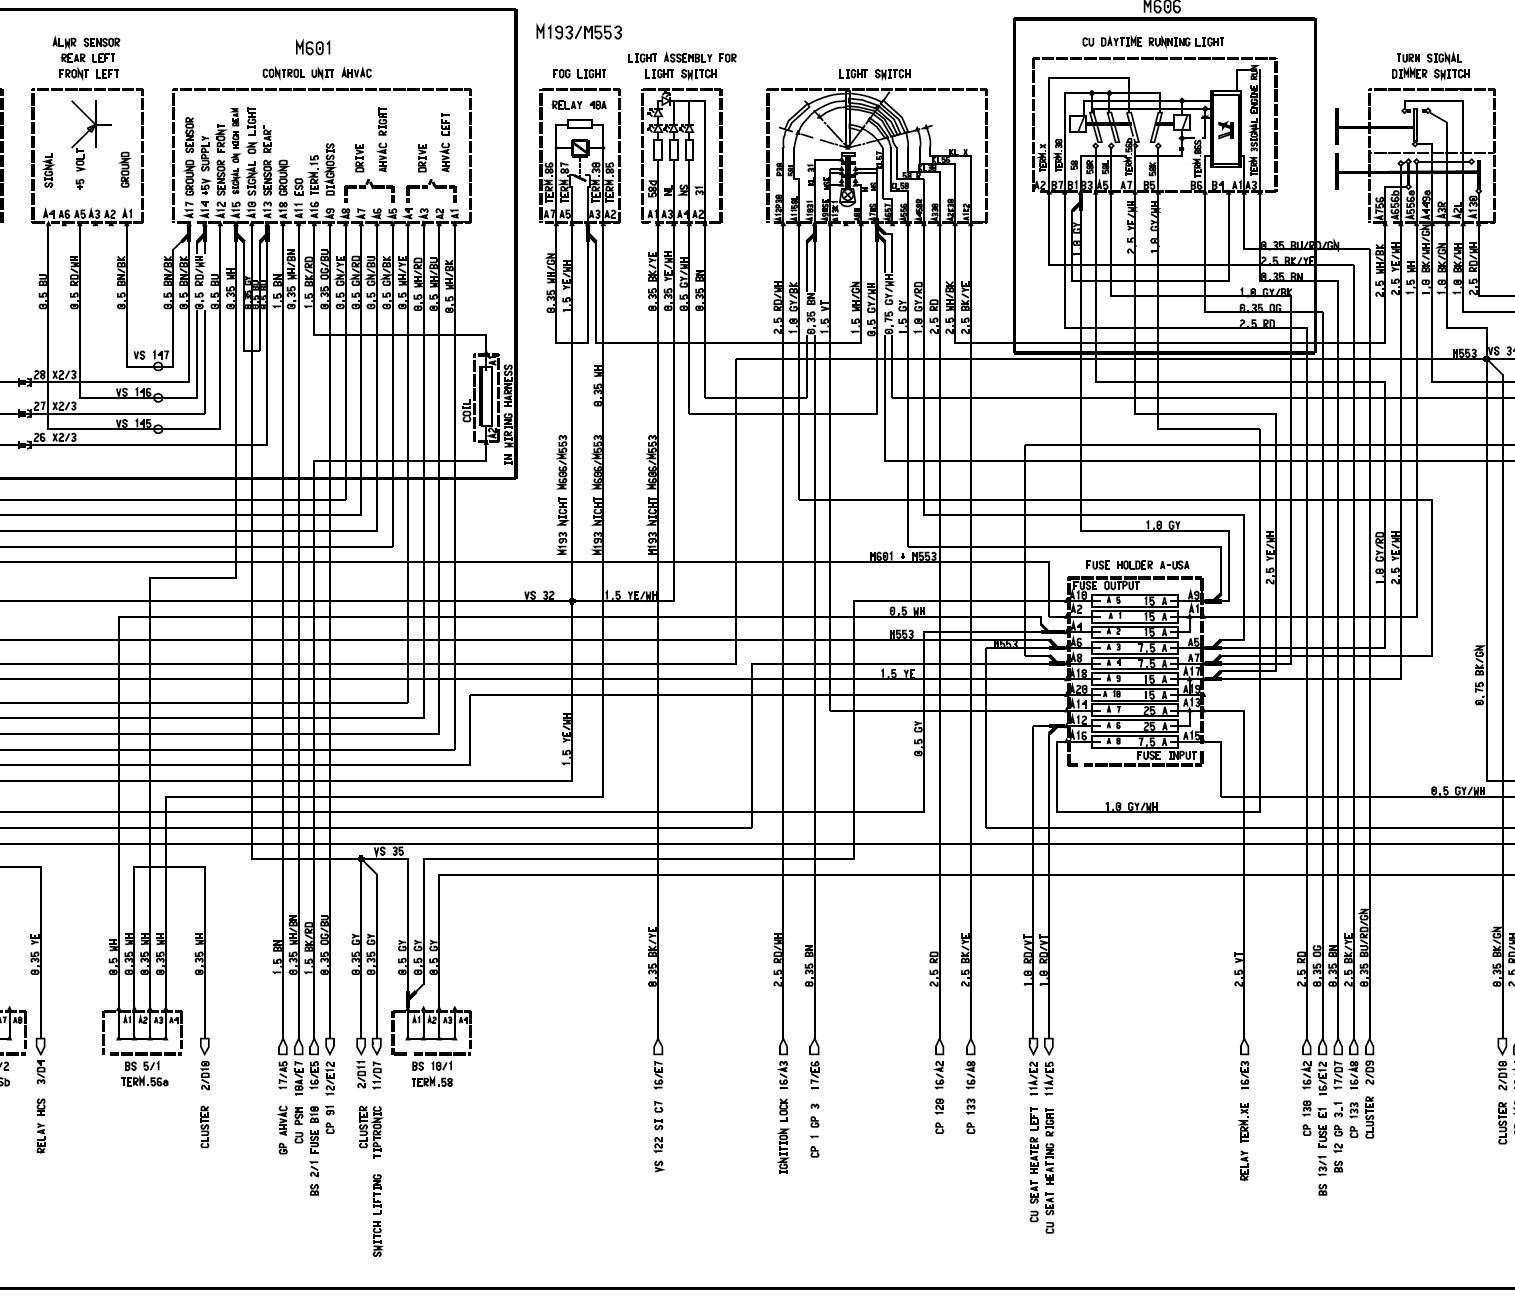 2002 Porsche 911 Wiring Diagram Fuse Box Schematics 2001 Engine Problems Rh Banyan Palace Com 1984